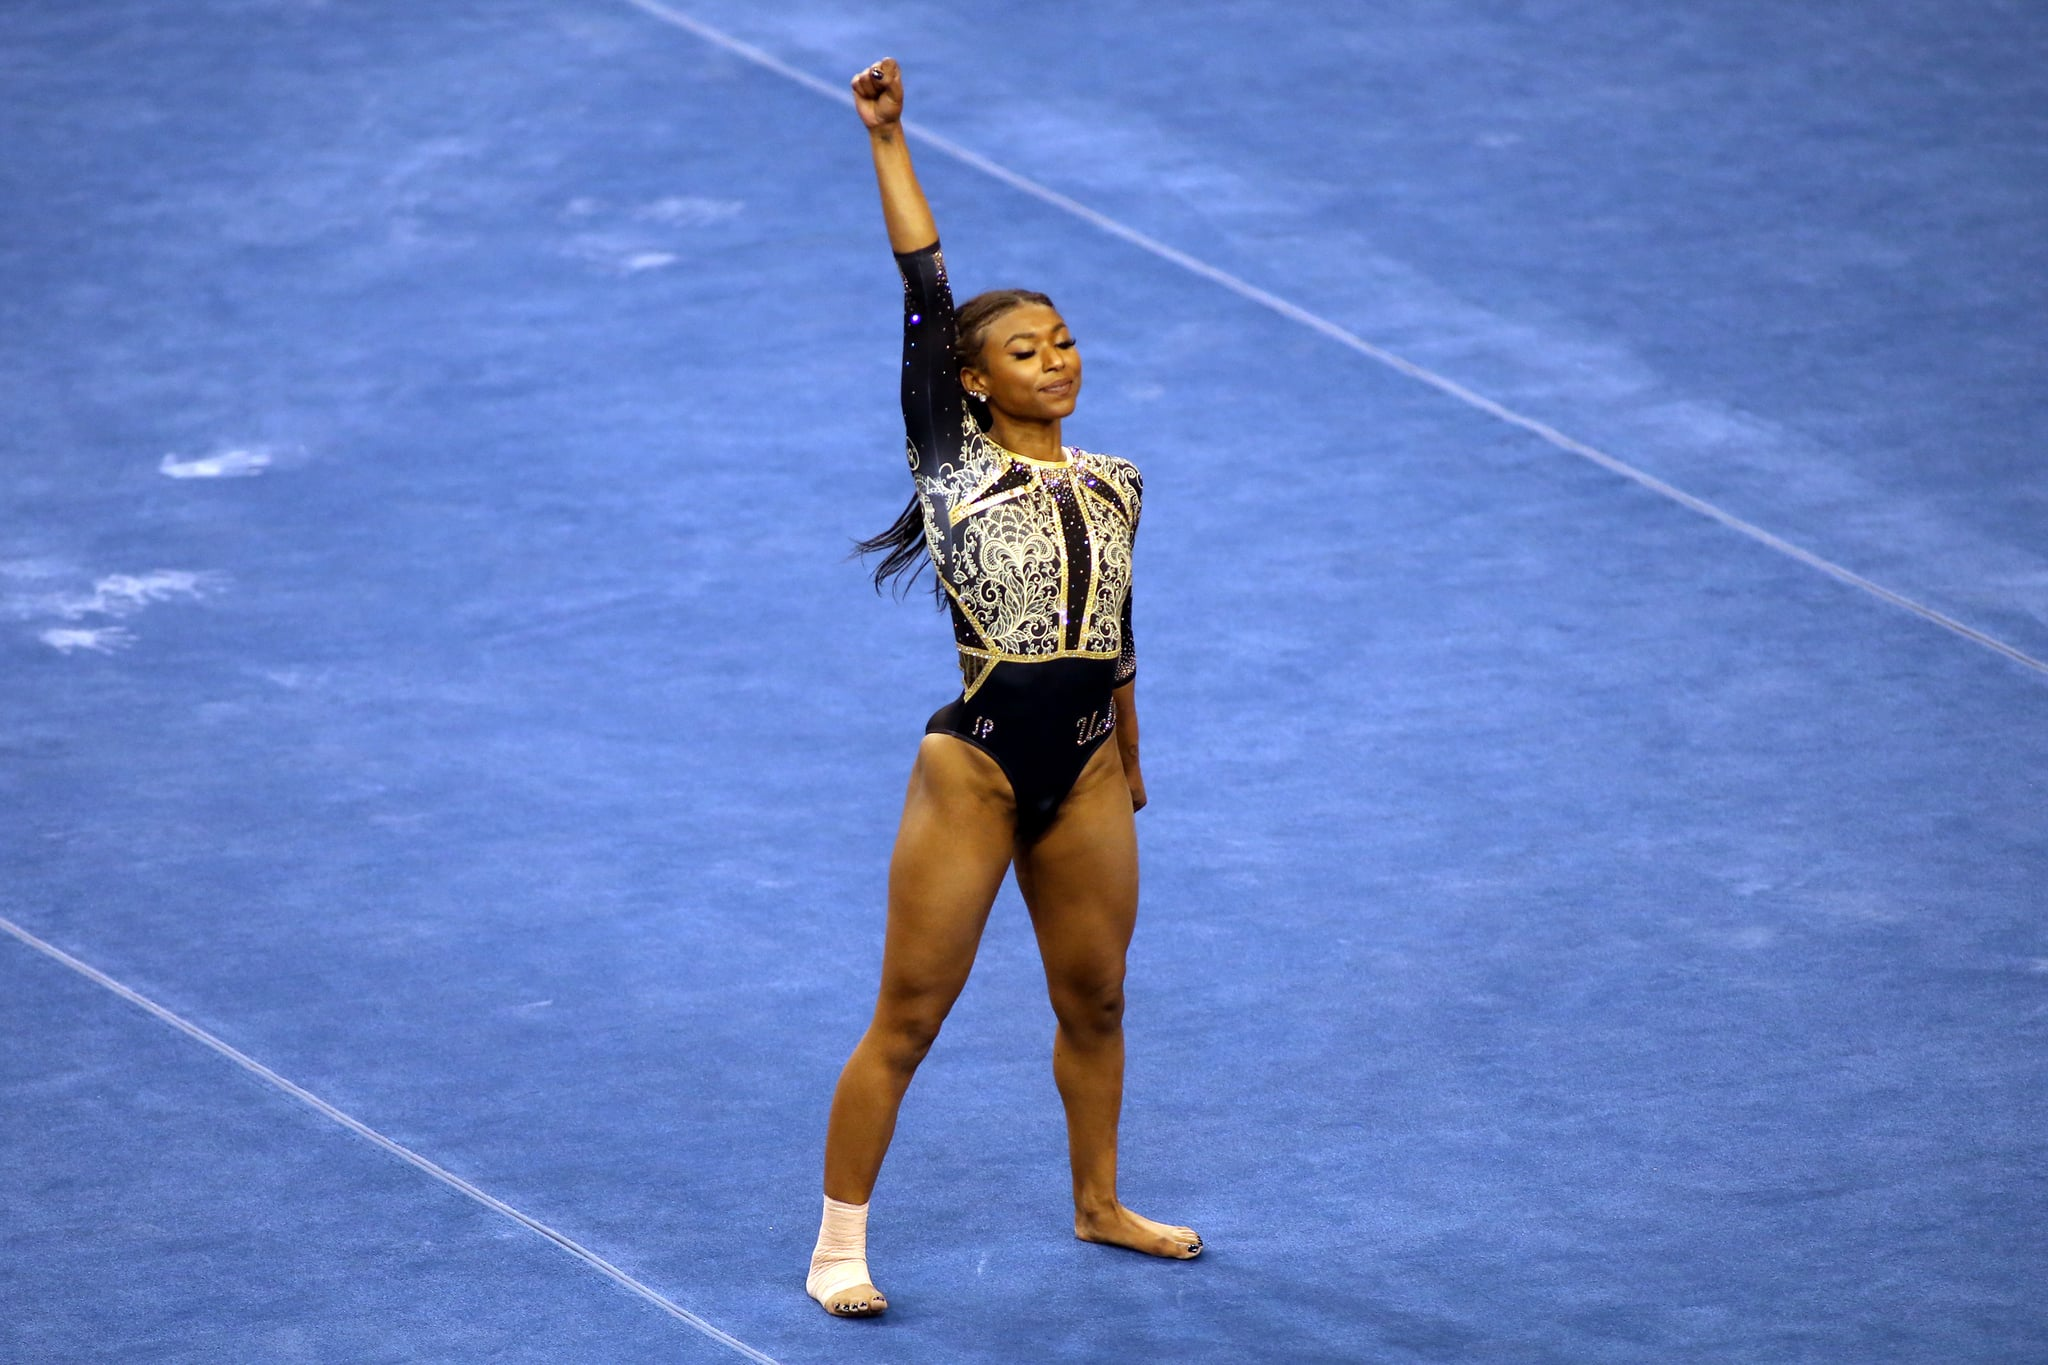 LOS ANGELES, CALIFORNIA - FEBRUARY 27: Nia Dennis of the UCLA Bruins raises a fist during her floor routine during a meet against the Oregon State Beavers at Pauley Pavilion on February 27, 2021 in Los Angeles, California. (Photo by Katharine Lotze/Getty Images)